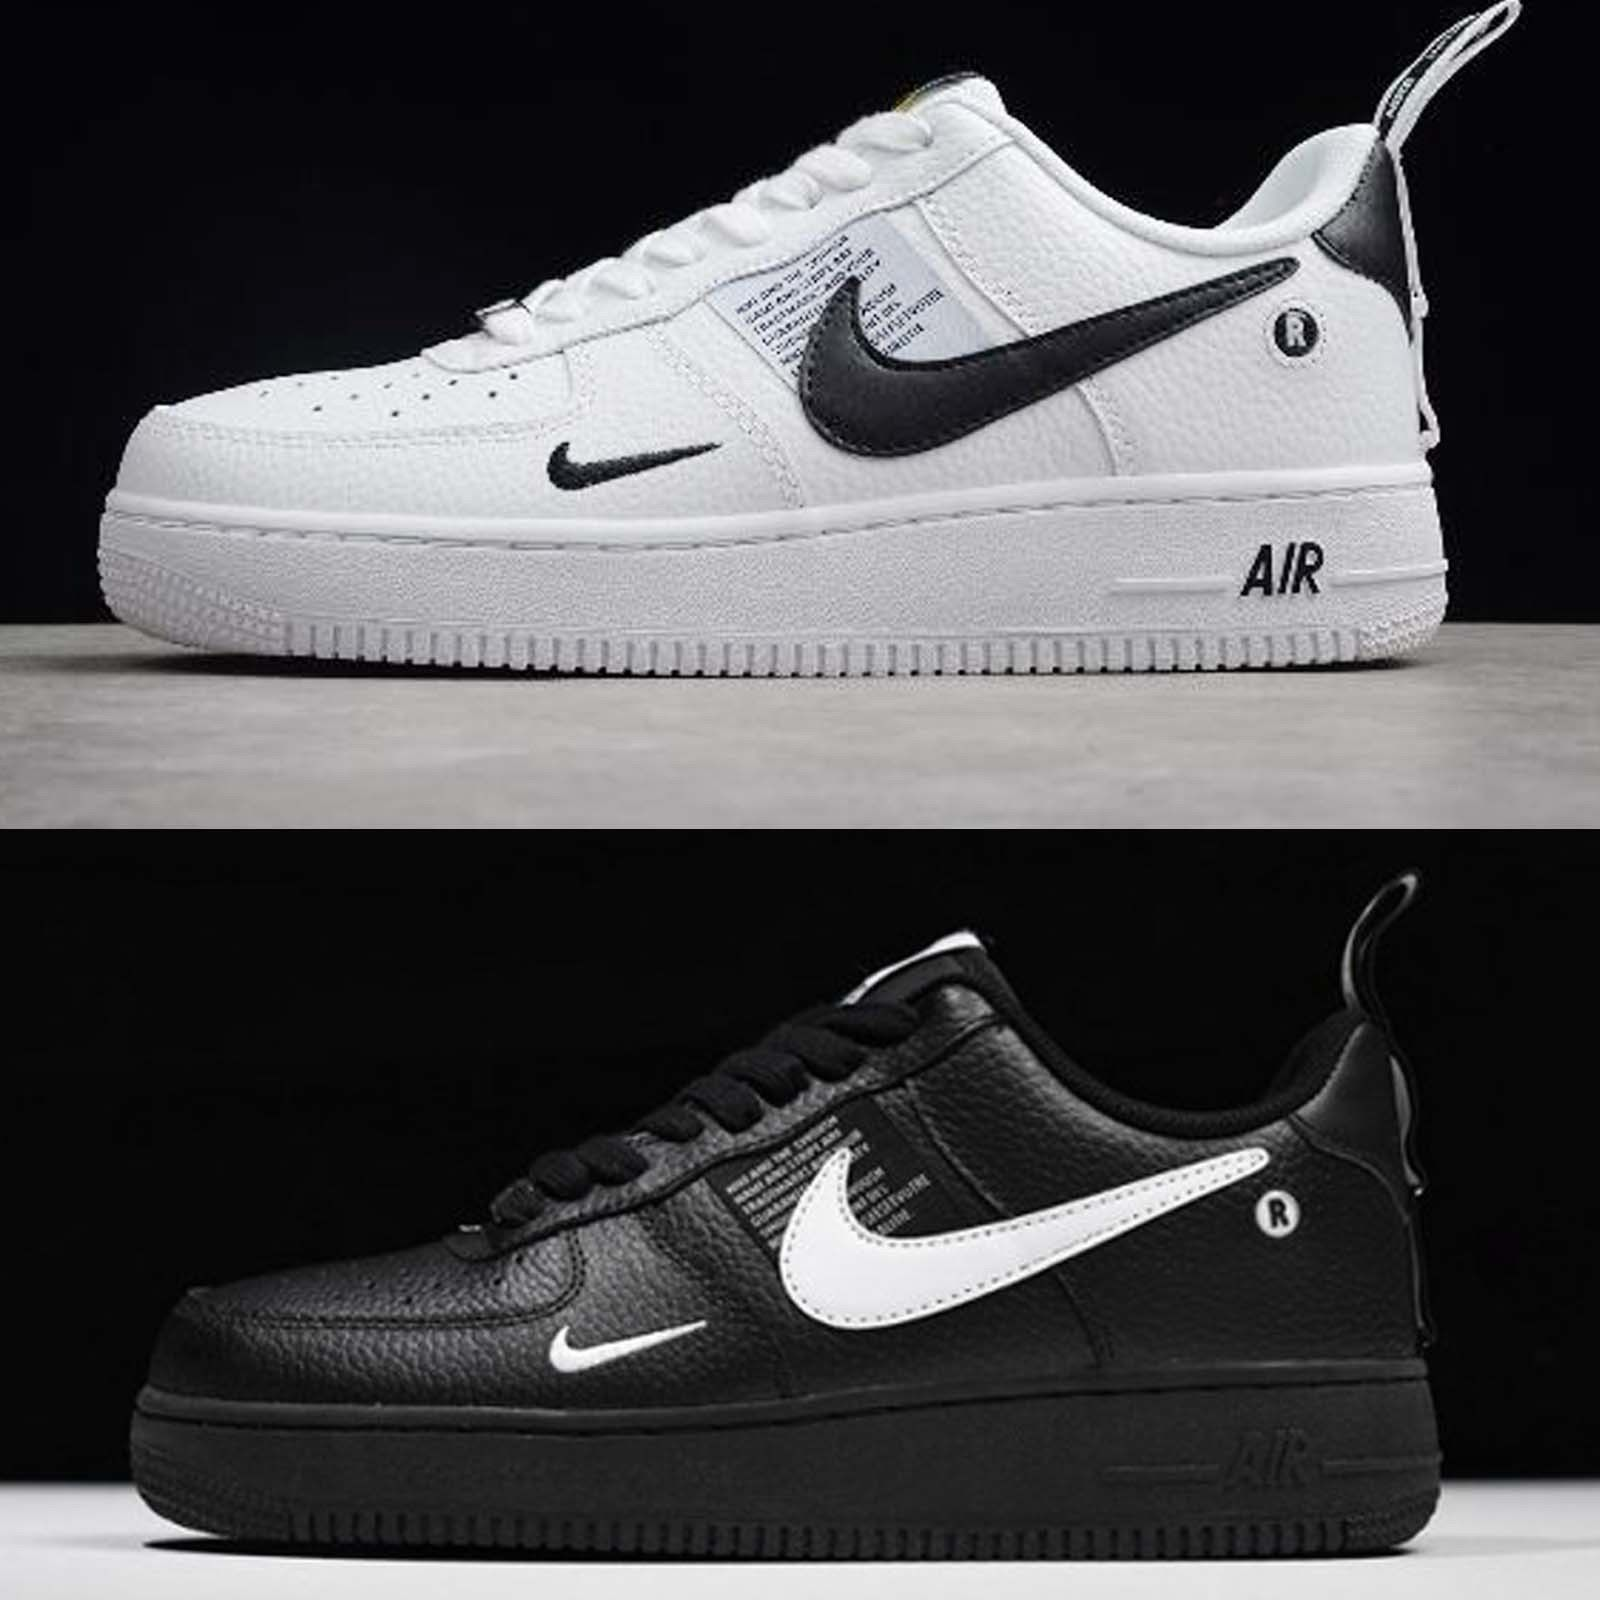 f4c3cdf3140df Nike Air Force 1 07 LV8 utility back and white | Shoes in 2019 ...